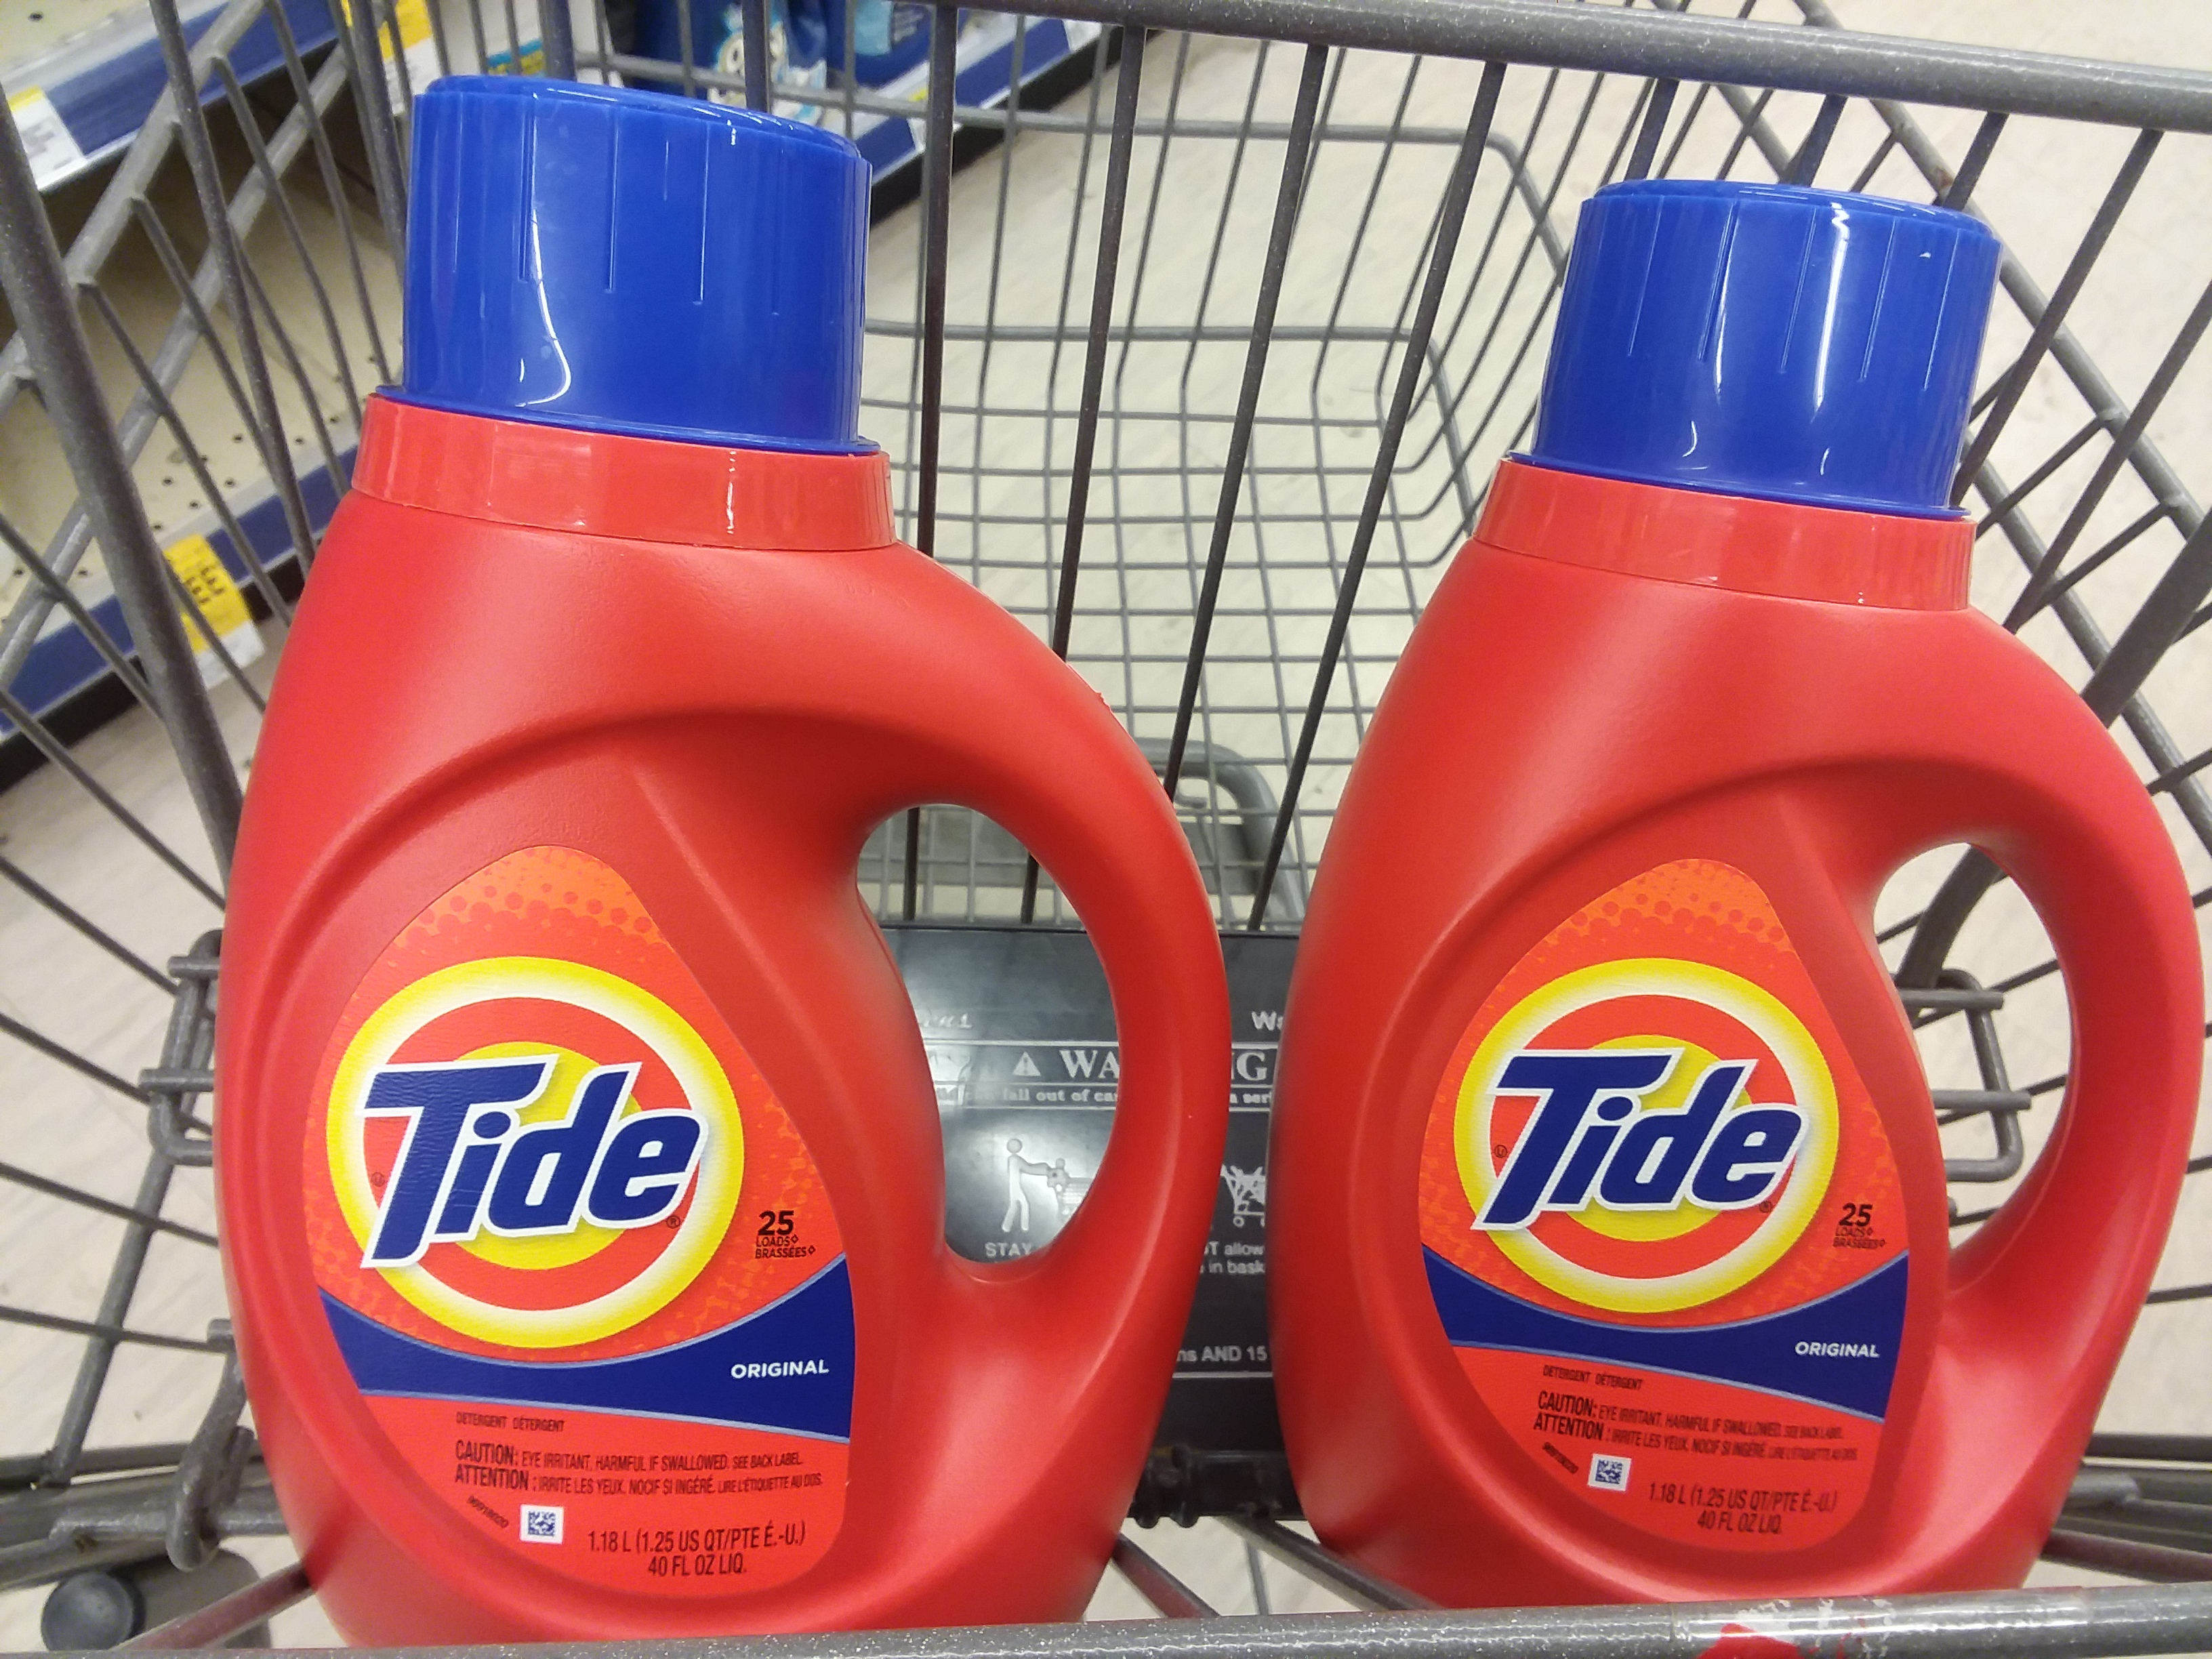 Tide at walgreens